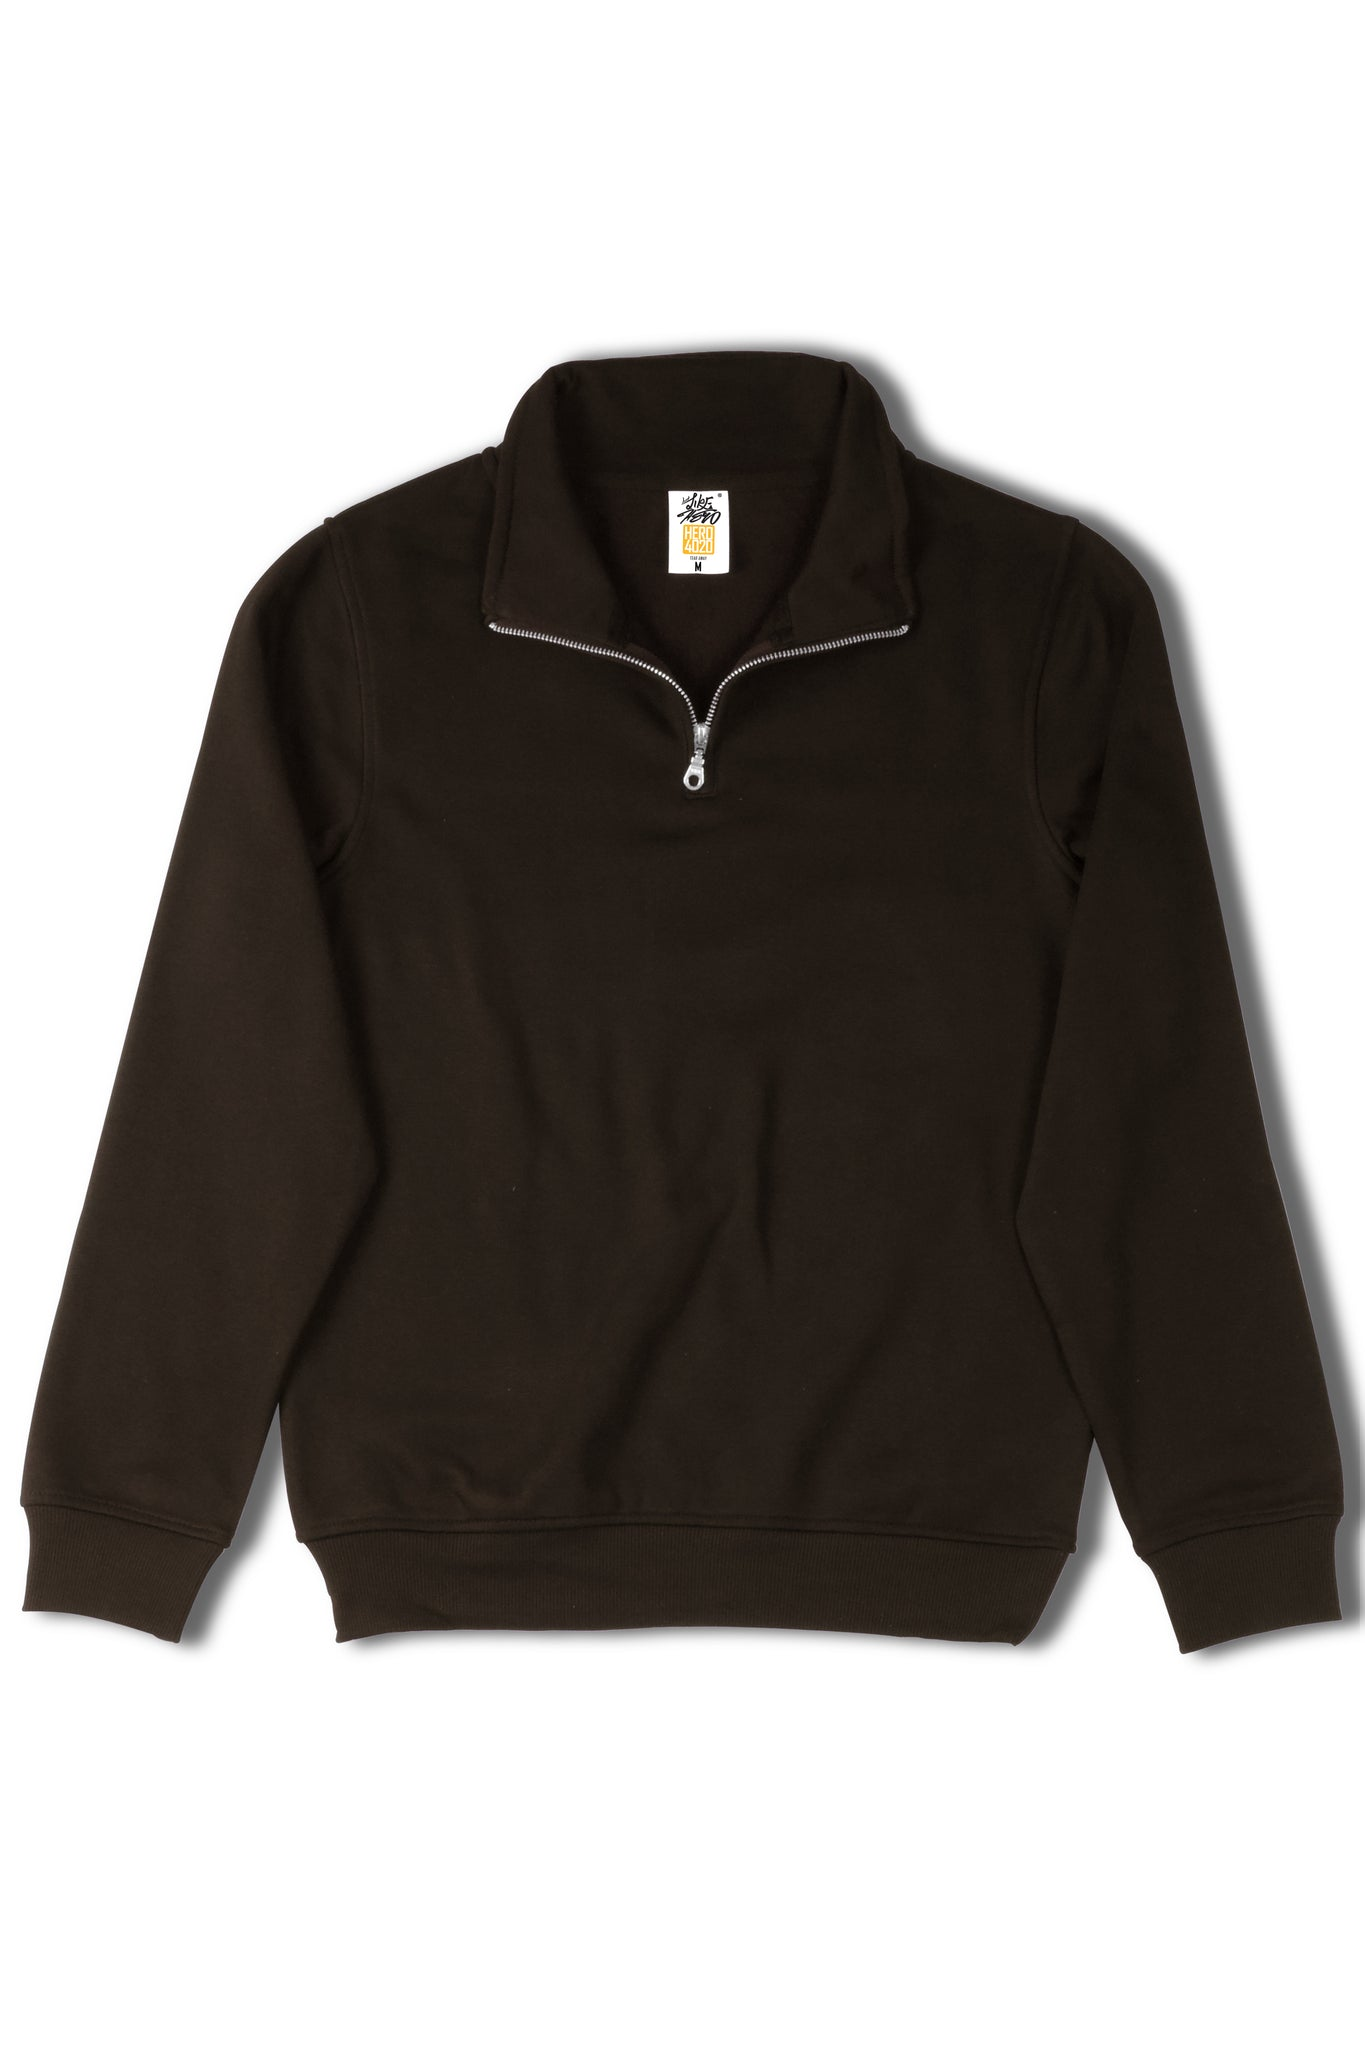 HERO-4020 Unisex Quarter Zip Sweatshirt - Black